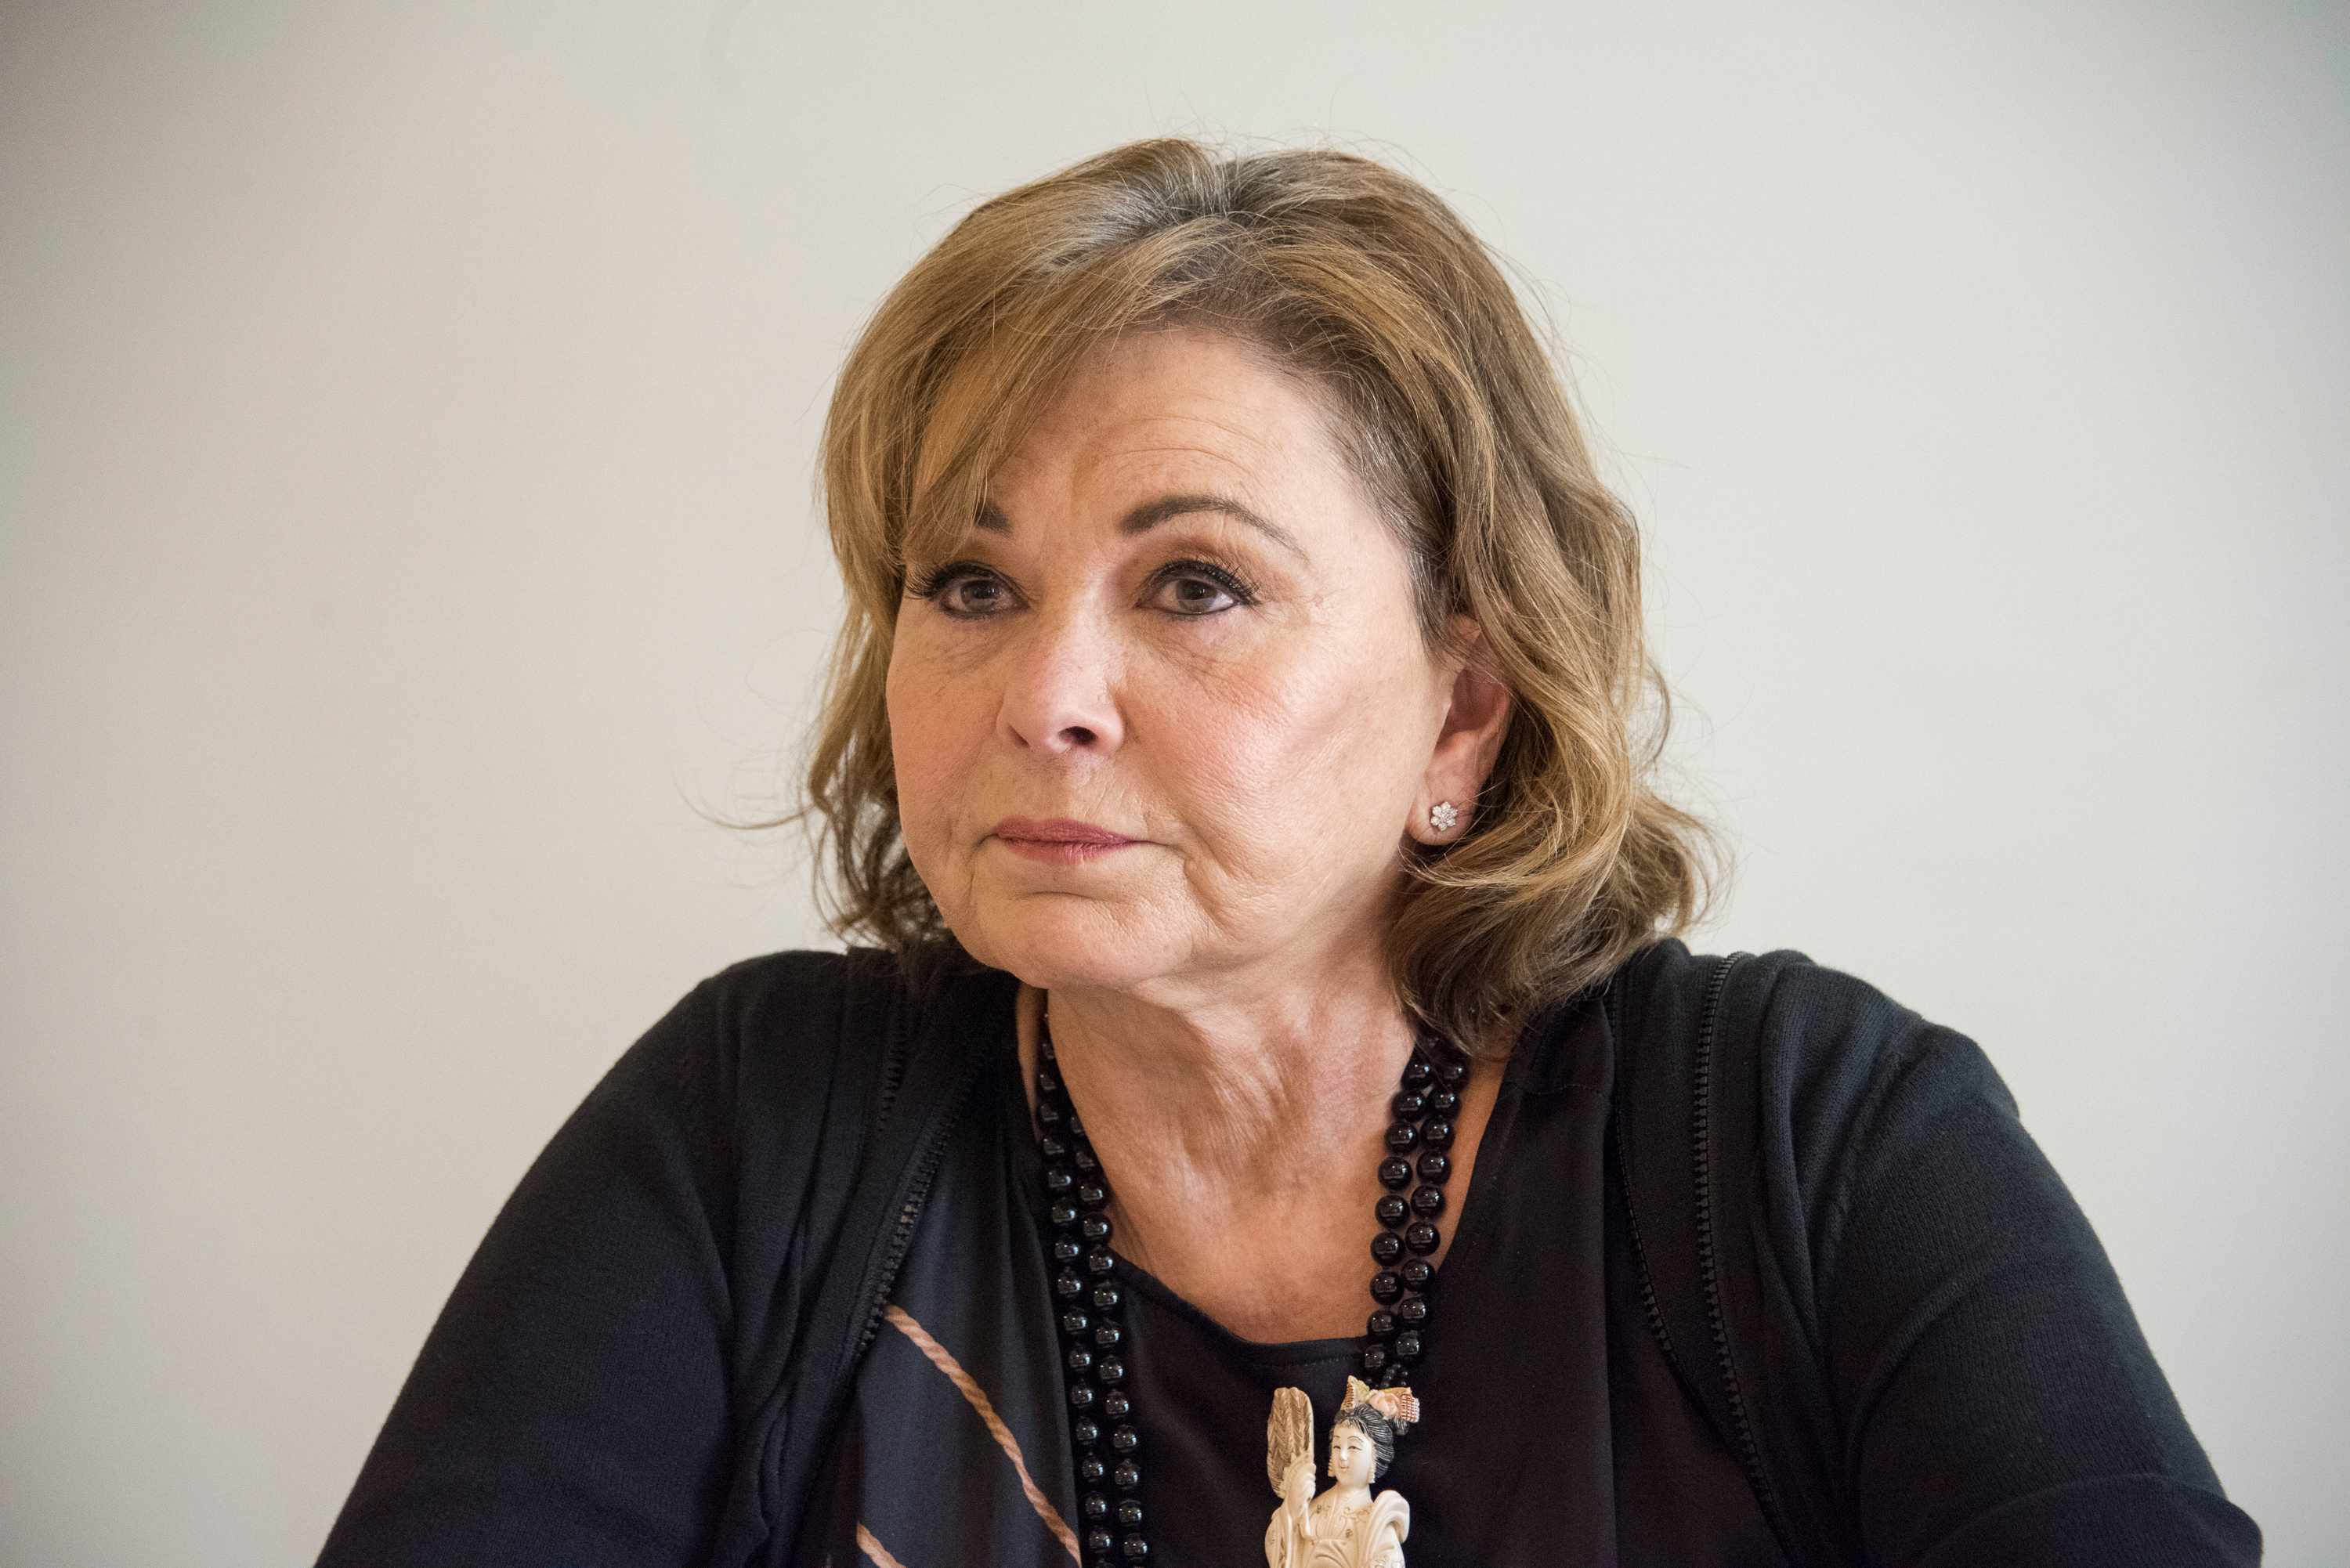 """BEVERLY HILLS, CA - MARCH 23:  Roseanne Barr at the """"Roseanne"""" Press Conference at the Four Seasons Hotel on March 23, 2018 in Beverly Hills, California.  (Photo by Vera Anderson/WireImage)  TL"""